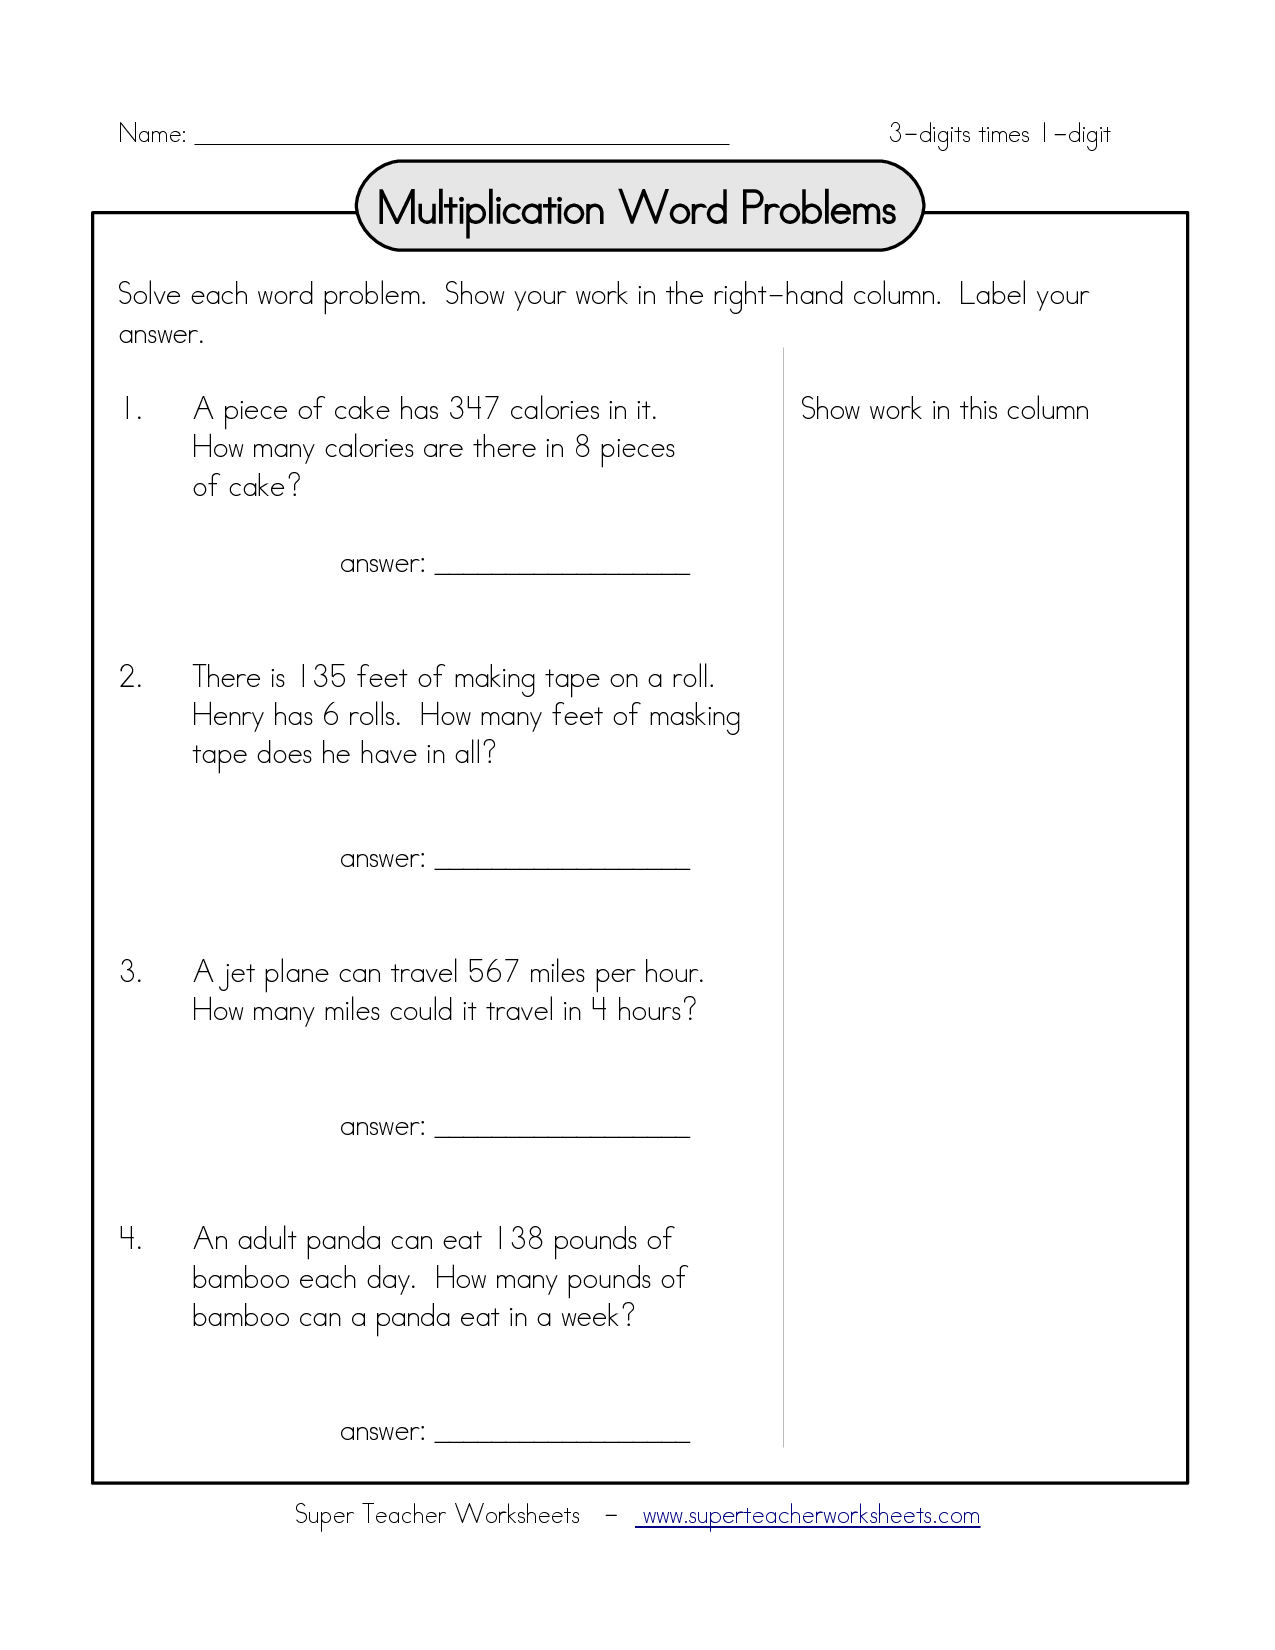 Multiplying By Multiples Of 10 Word Problems Worksheet